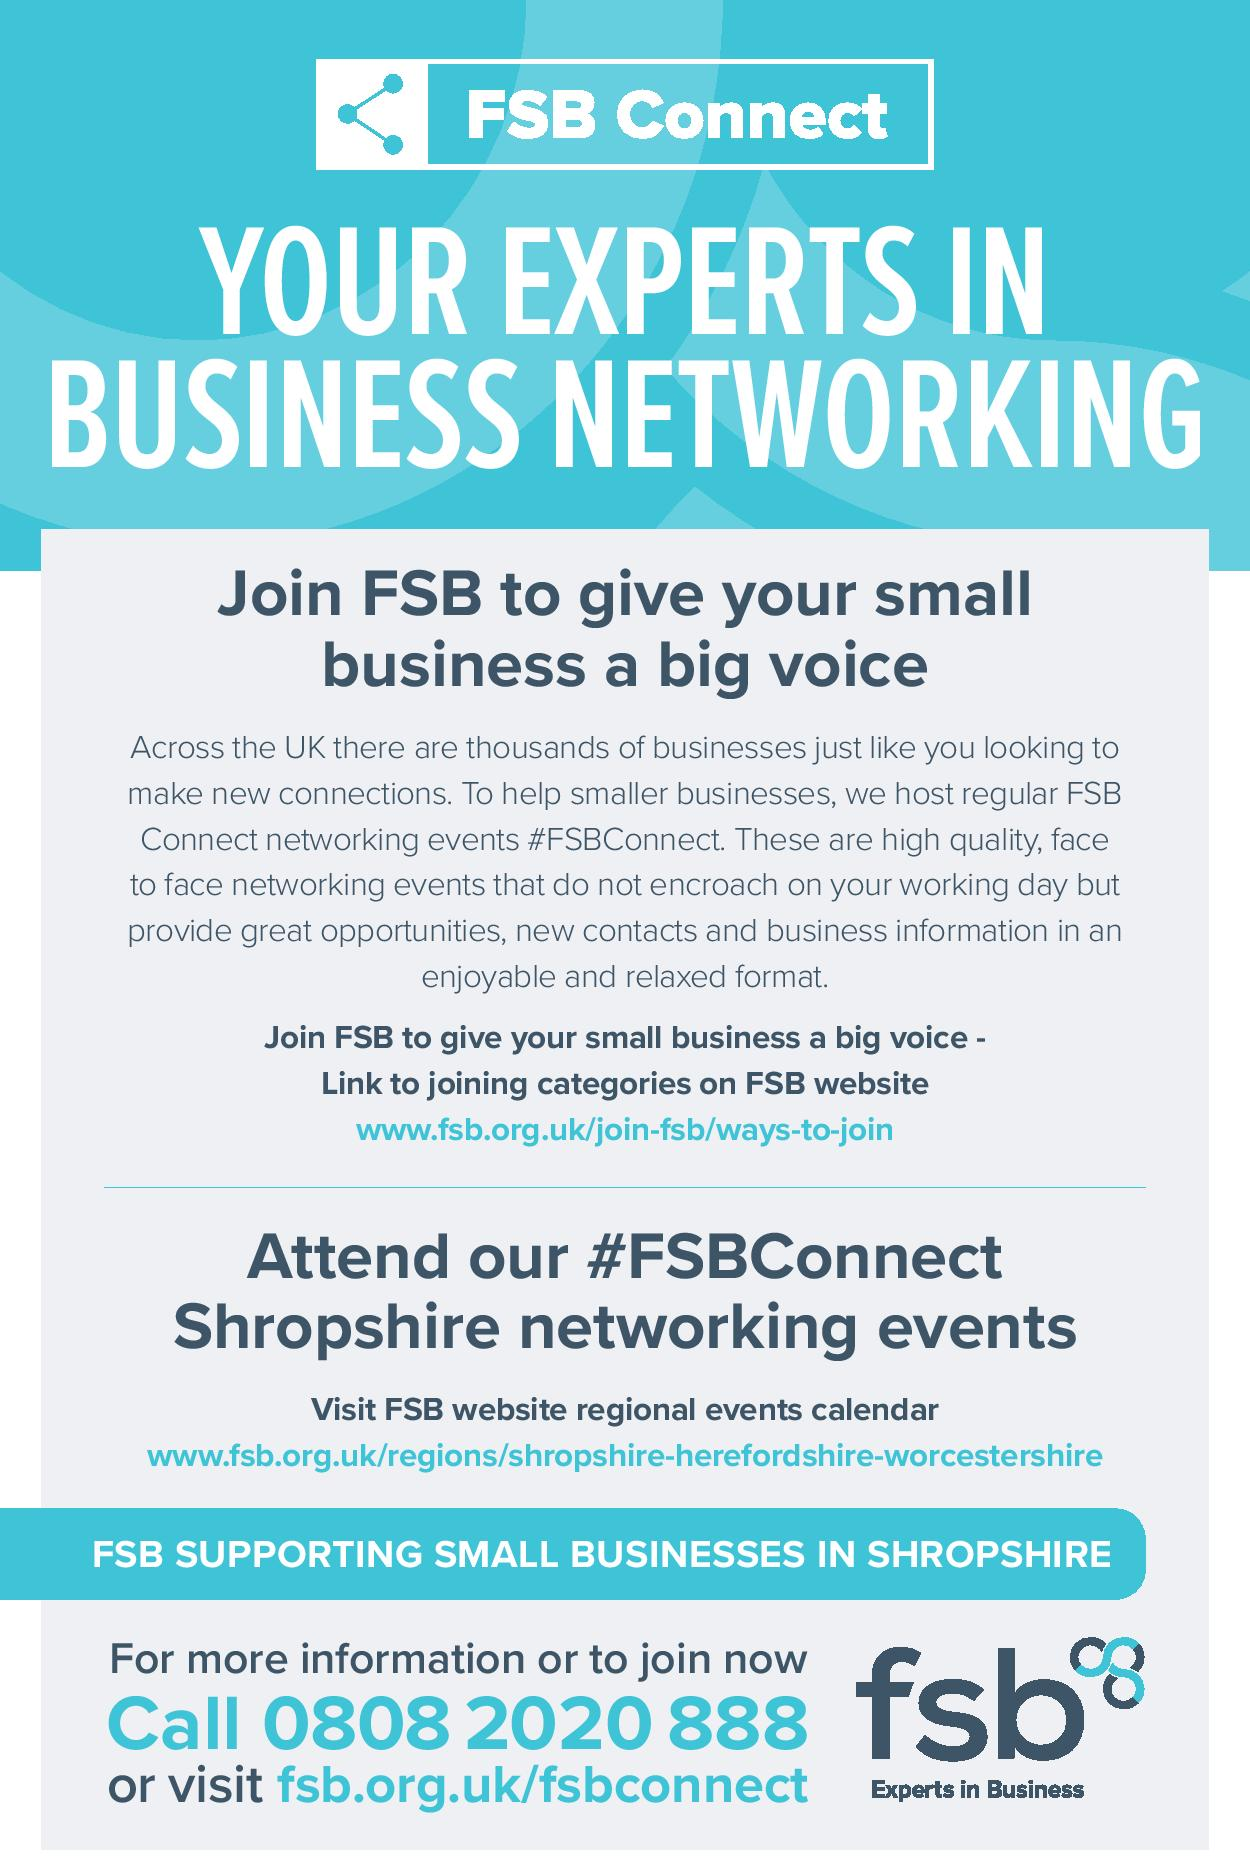 http://www.fsb.org.uk/fsbconnect